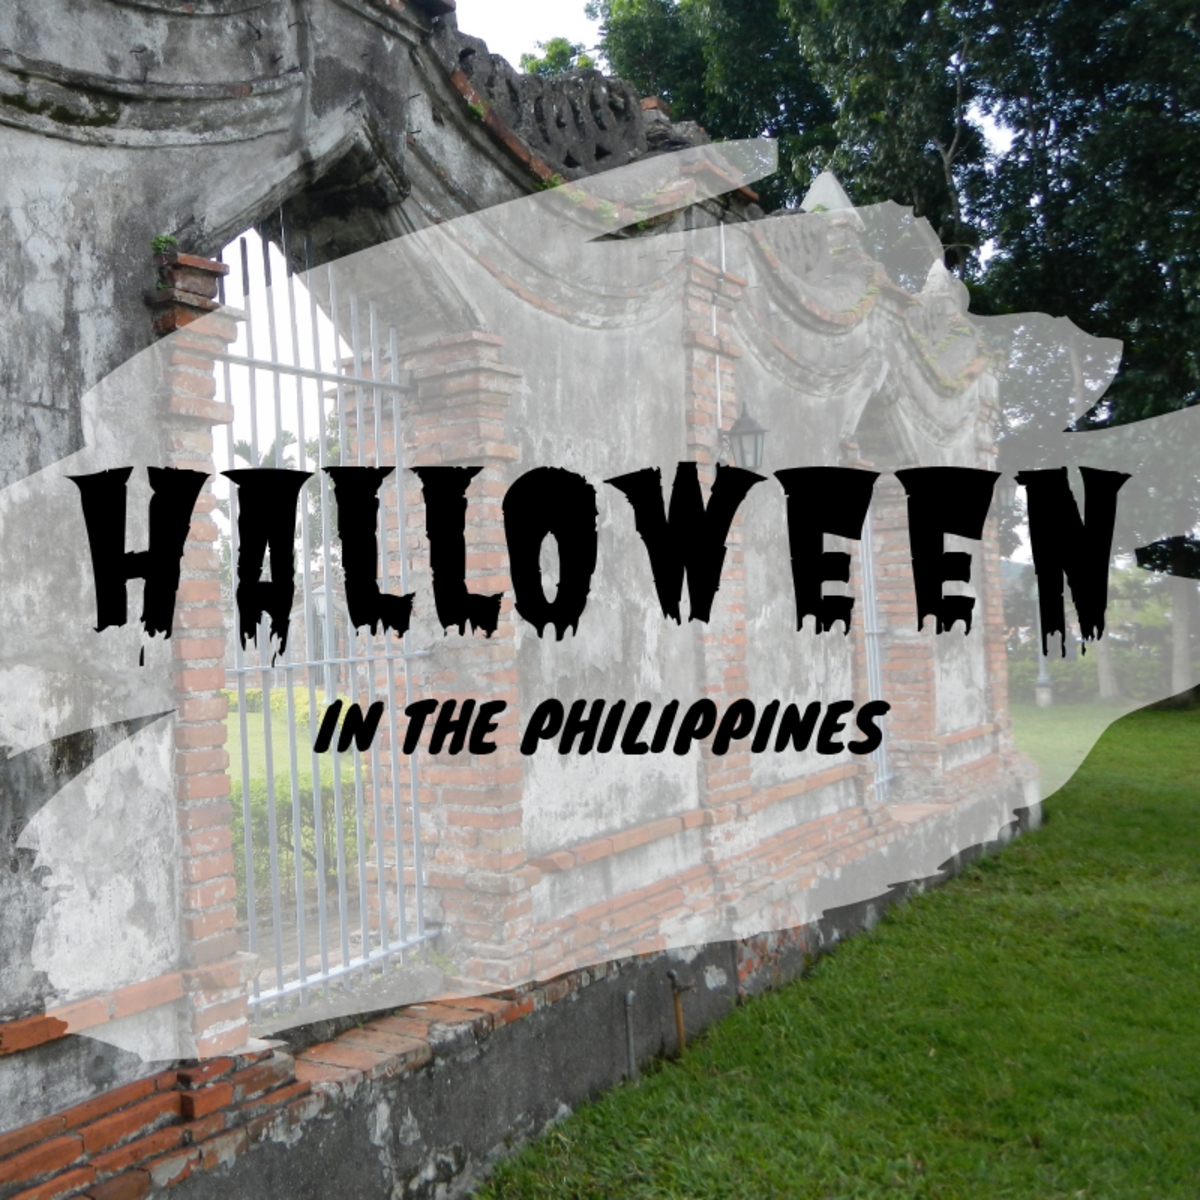 How Is Halloween Celebrated in the Philippines?